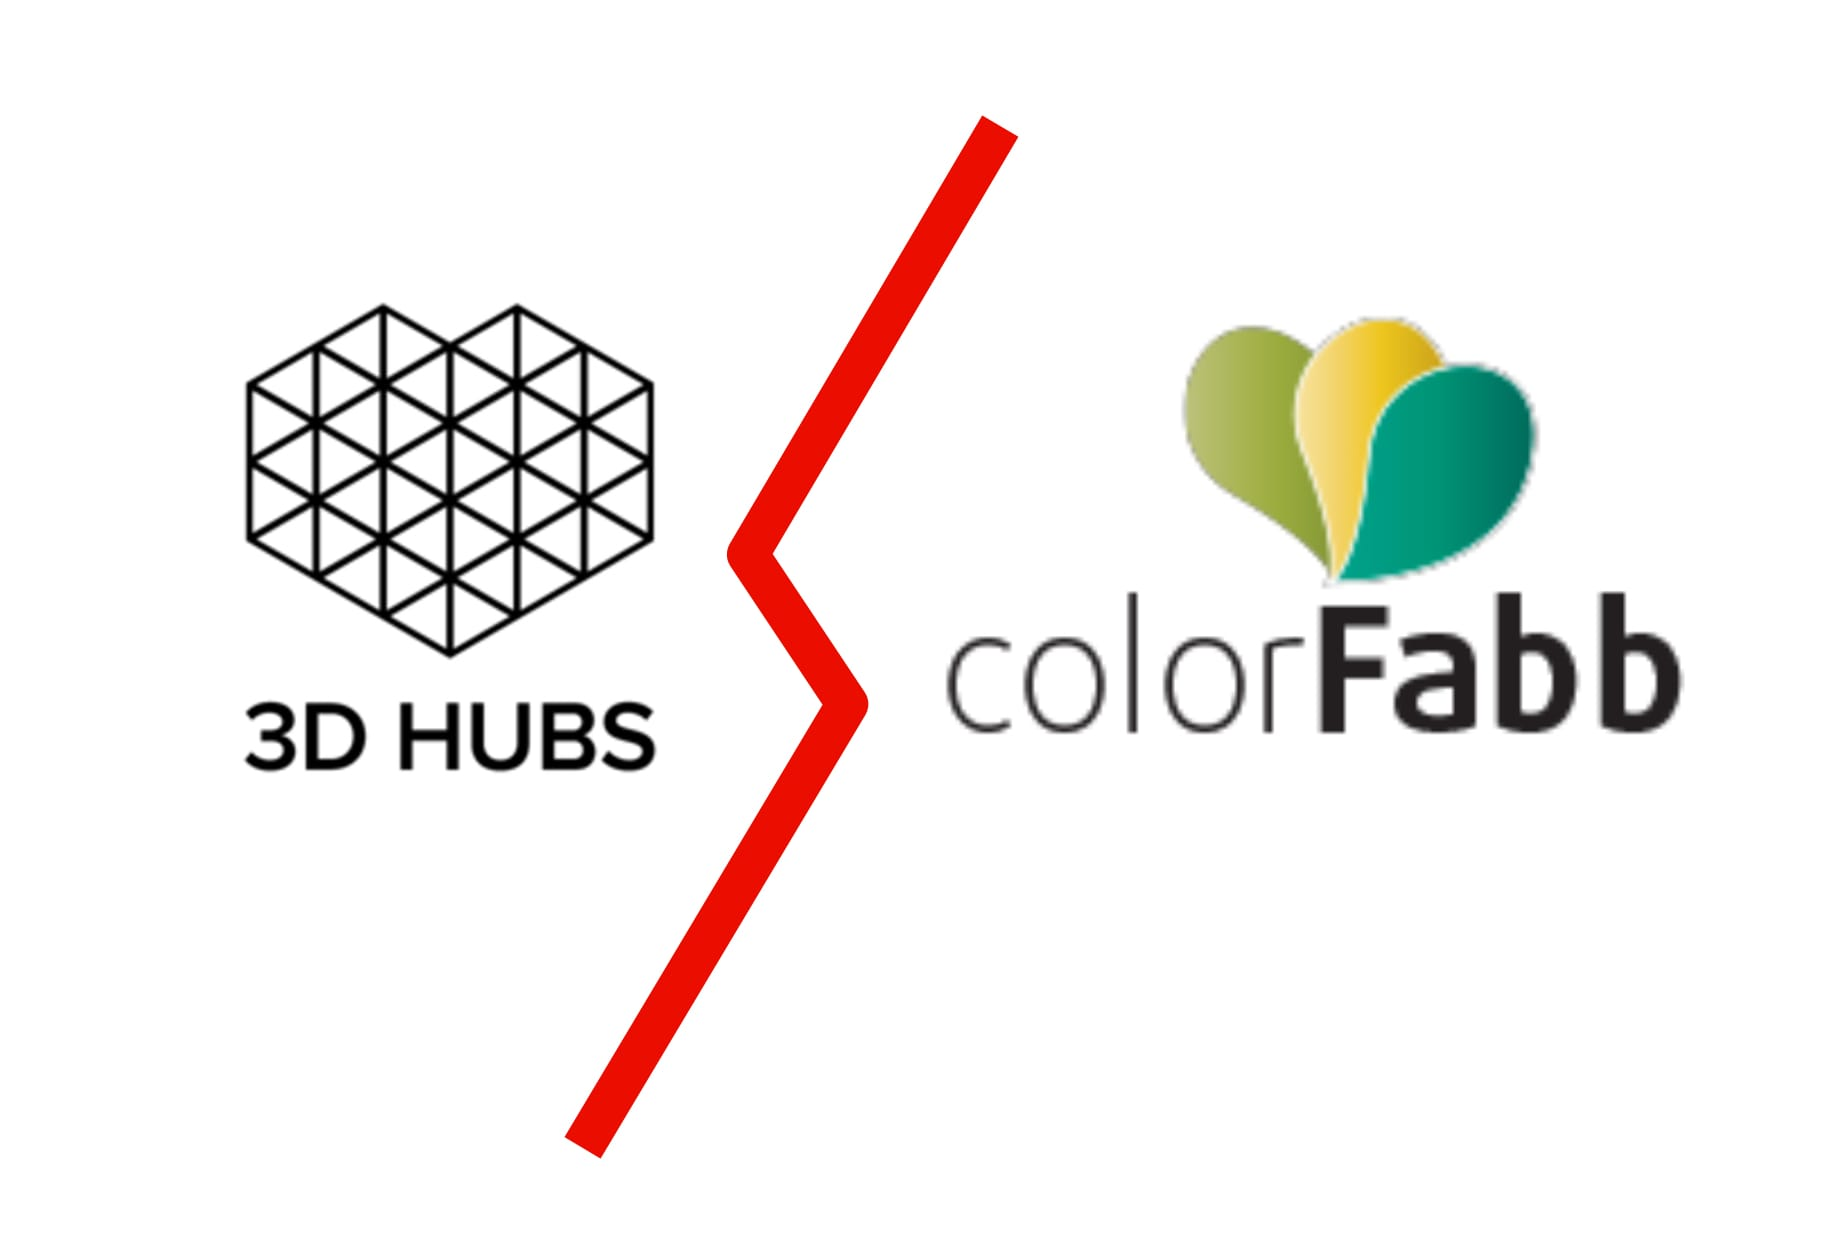 , 3D Hubs and colorFabb Call It Done